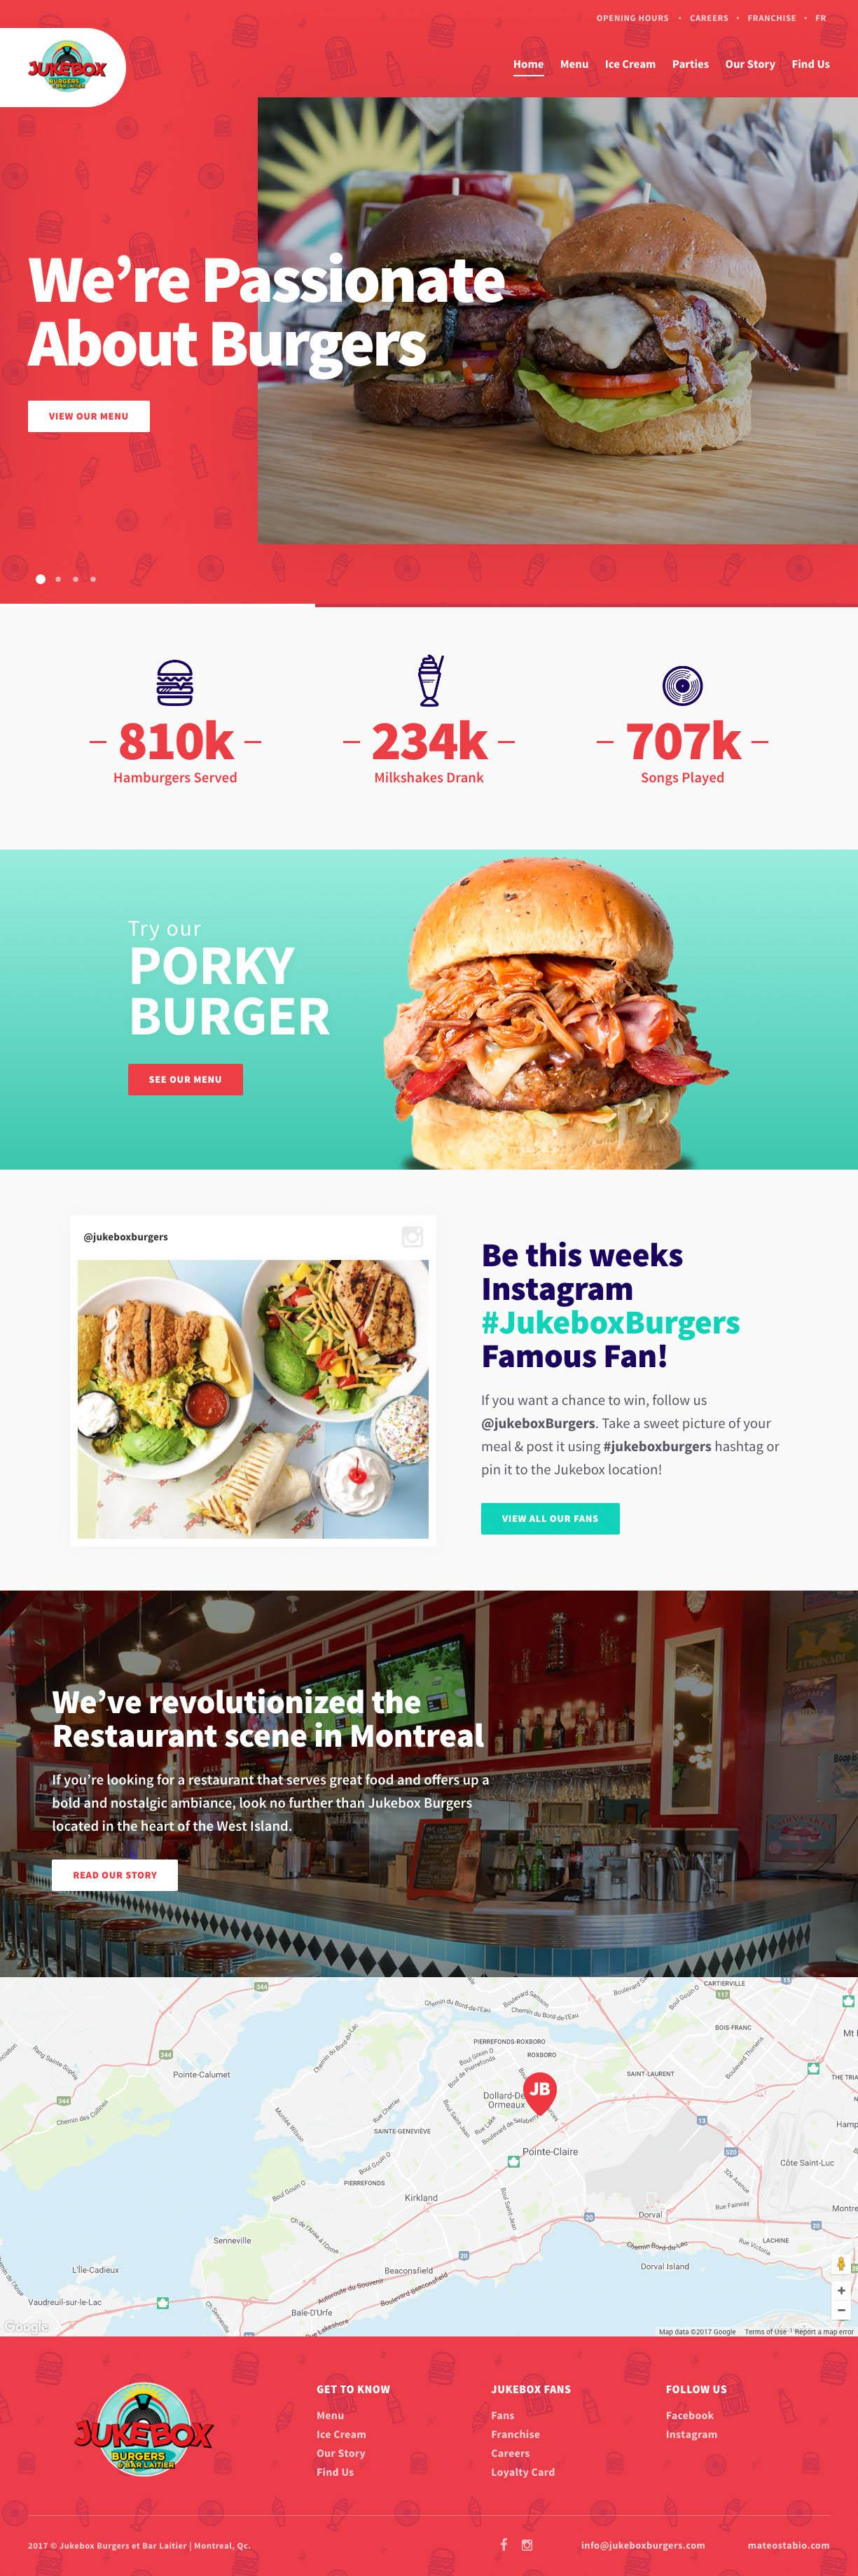 Full homepage restaurant website new modern mobile first custom built & integrated with Craft CMS